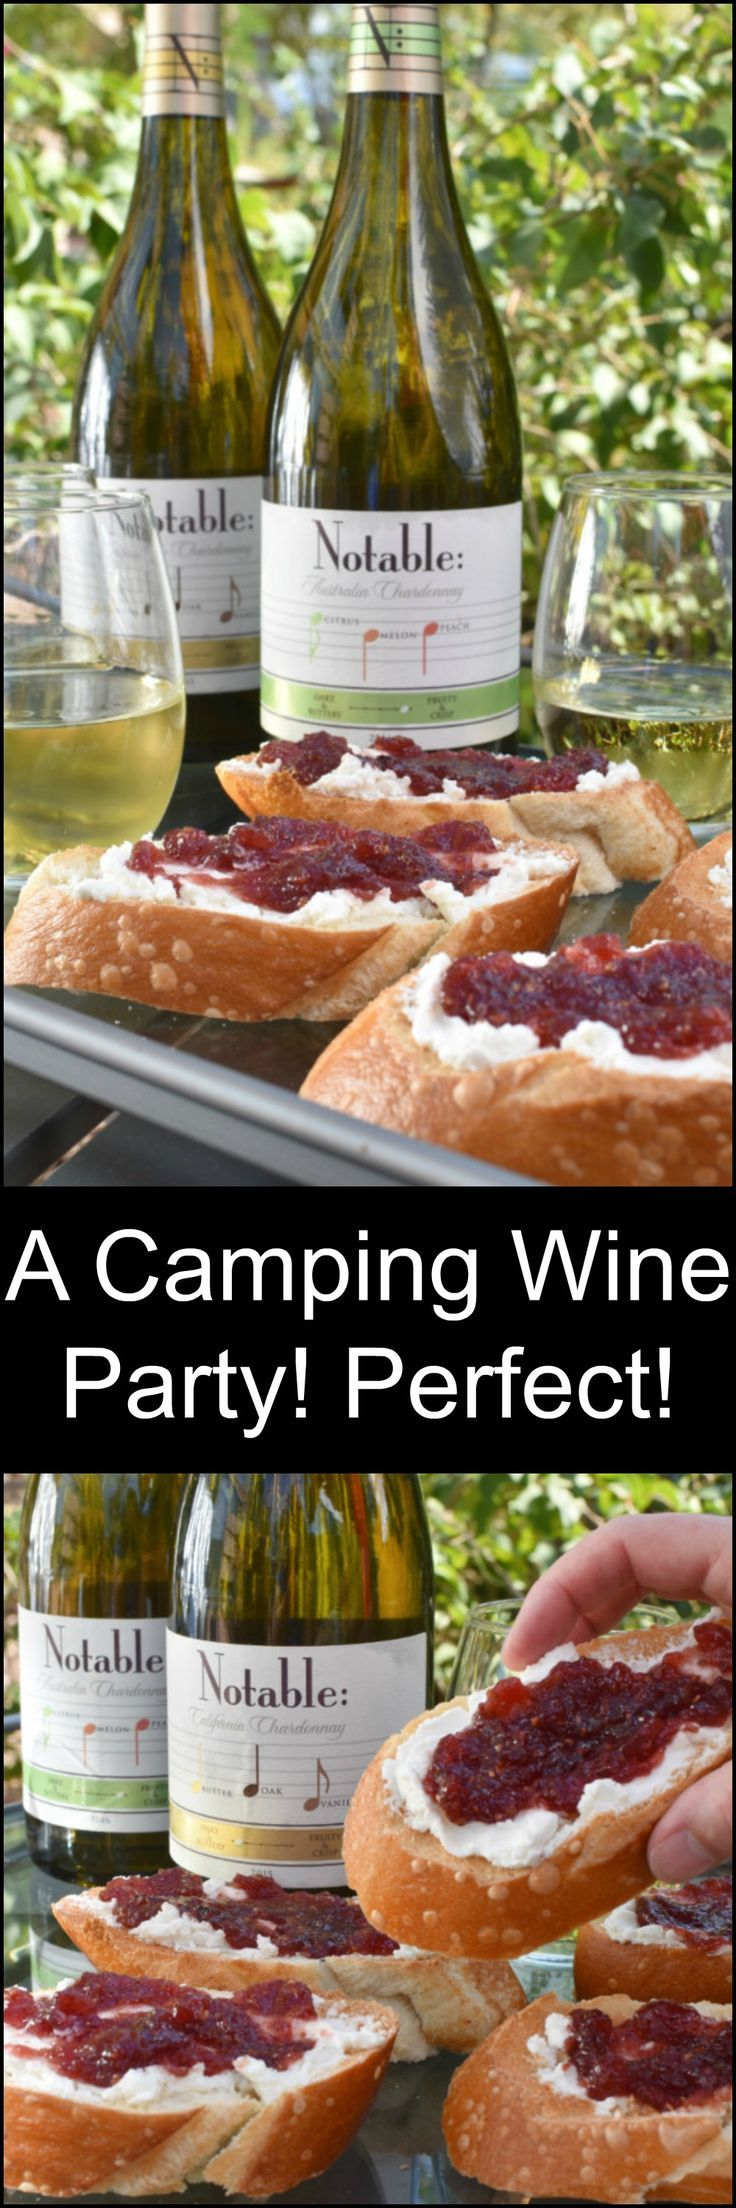 Elevate your camping game and have a wine party! #Chardonnation #NotableSummer Msg 4 21+ ad